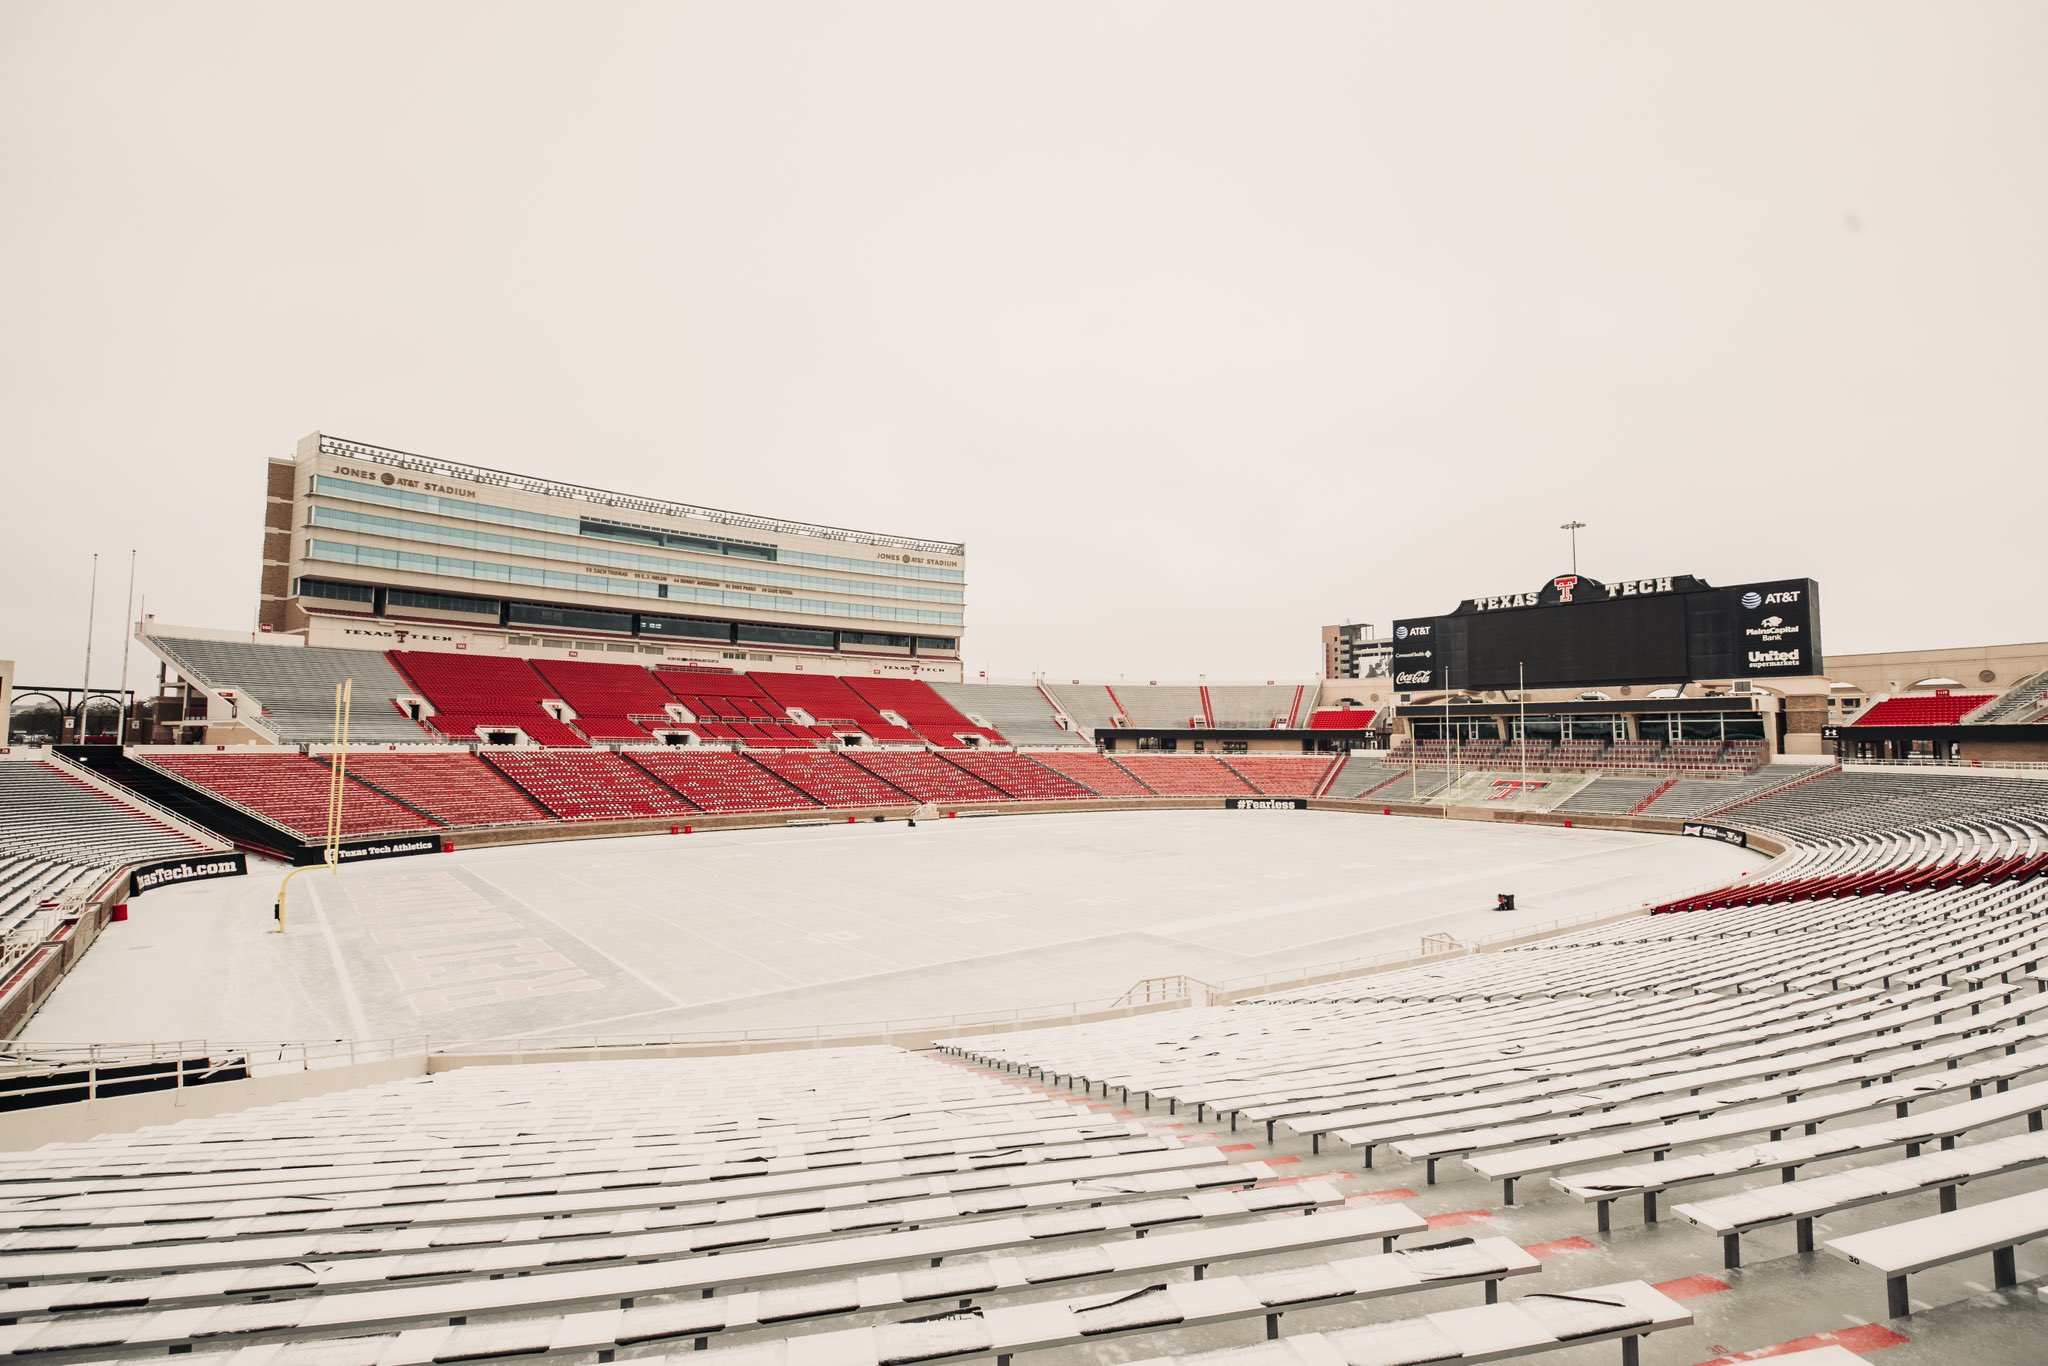 A sleet and ice coverage Jones AT&T Stadium at Texas Tech on Tuesday (27 October 2020). The image is courtesy of Texas Tech Football.